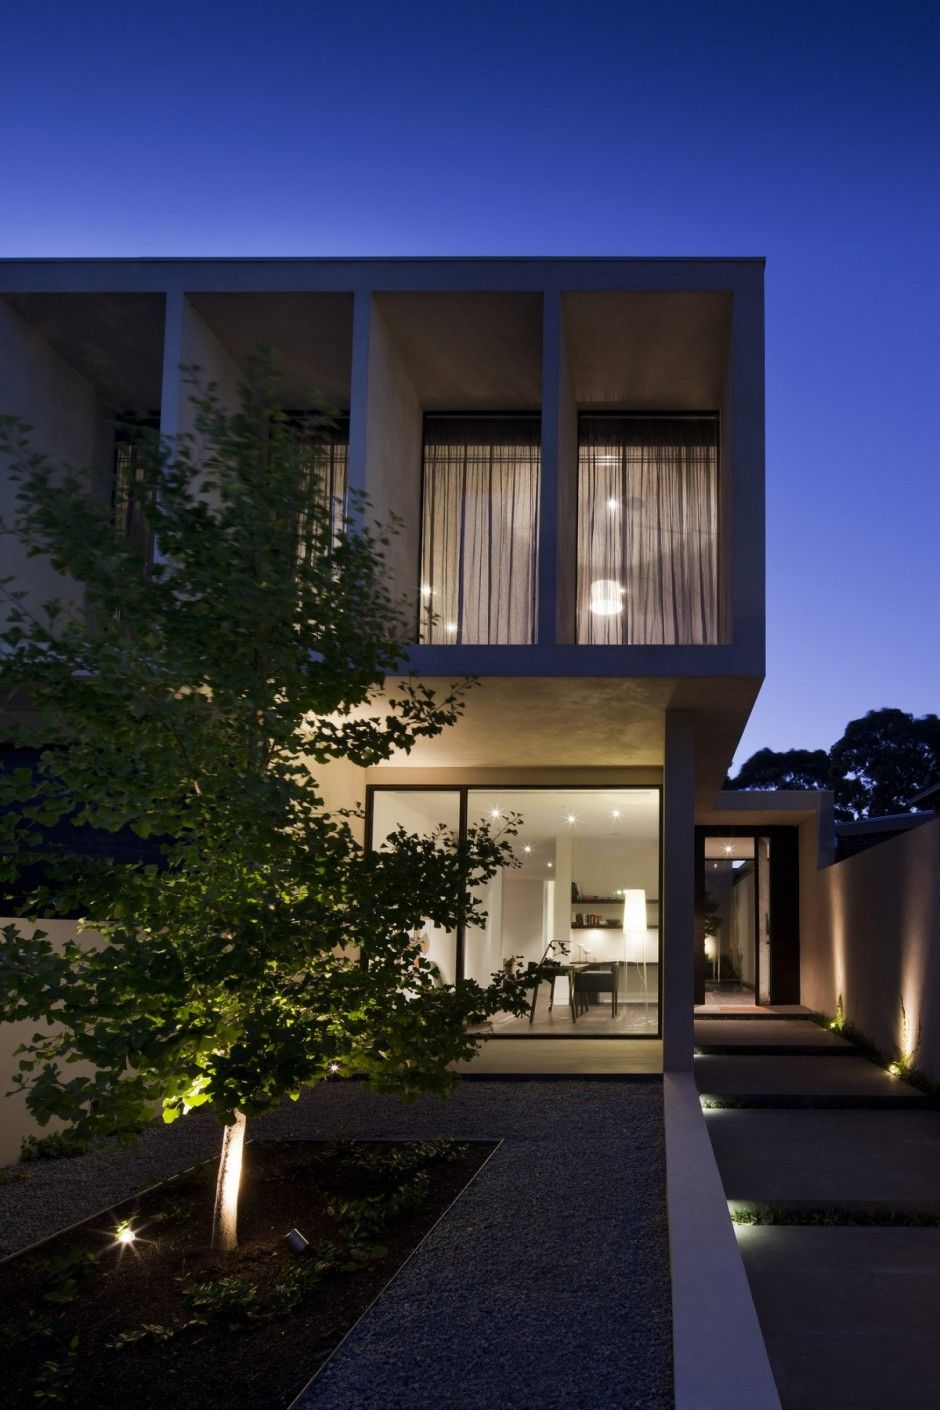 Exterior design for home  Evening View Gorgeous House Oriented Towards Sustainable Design